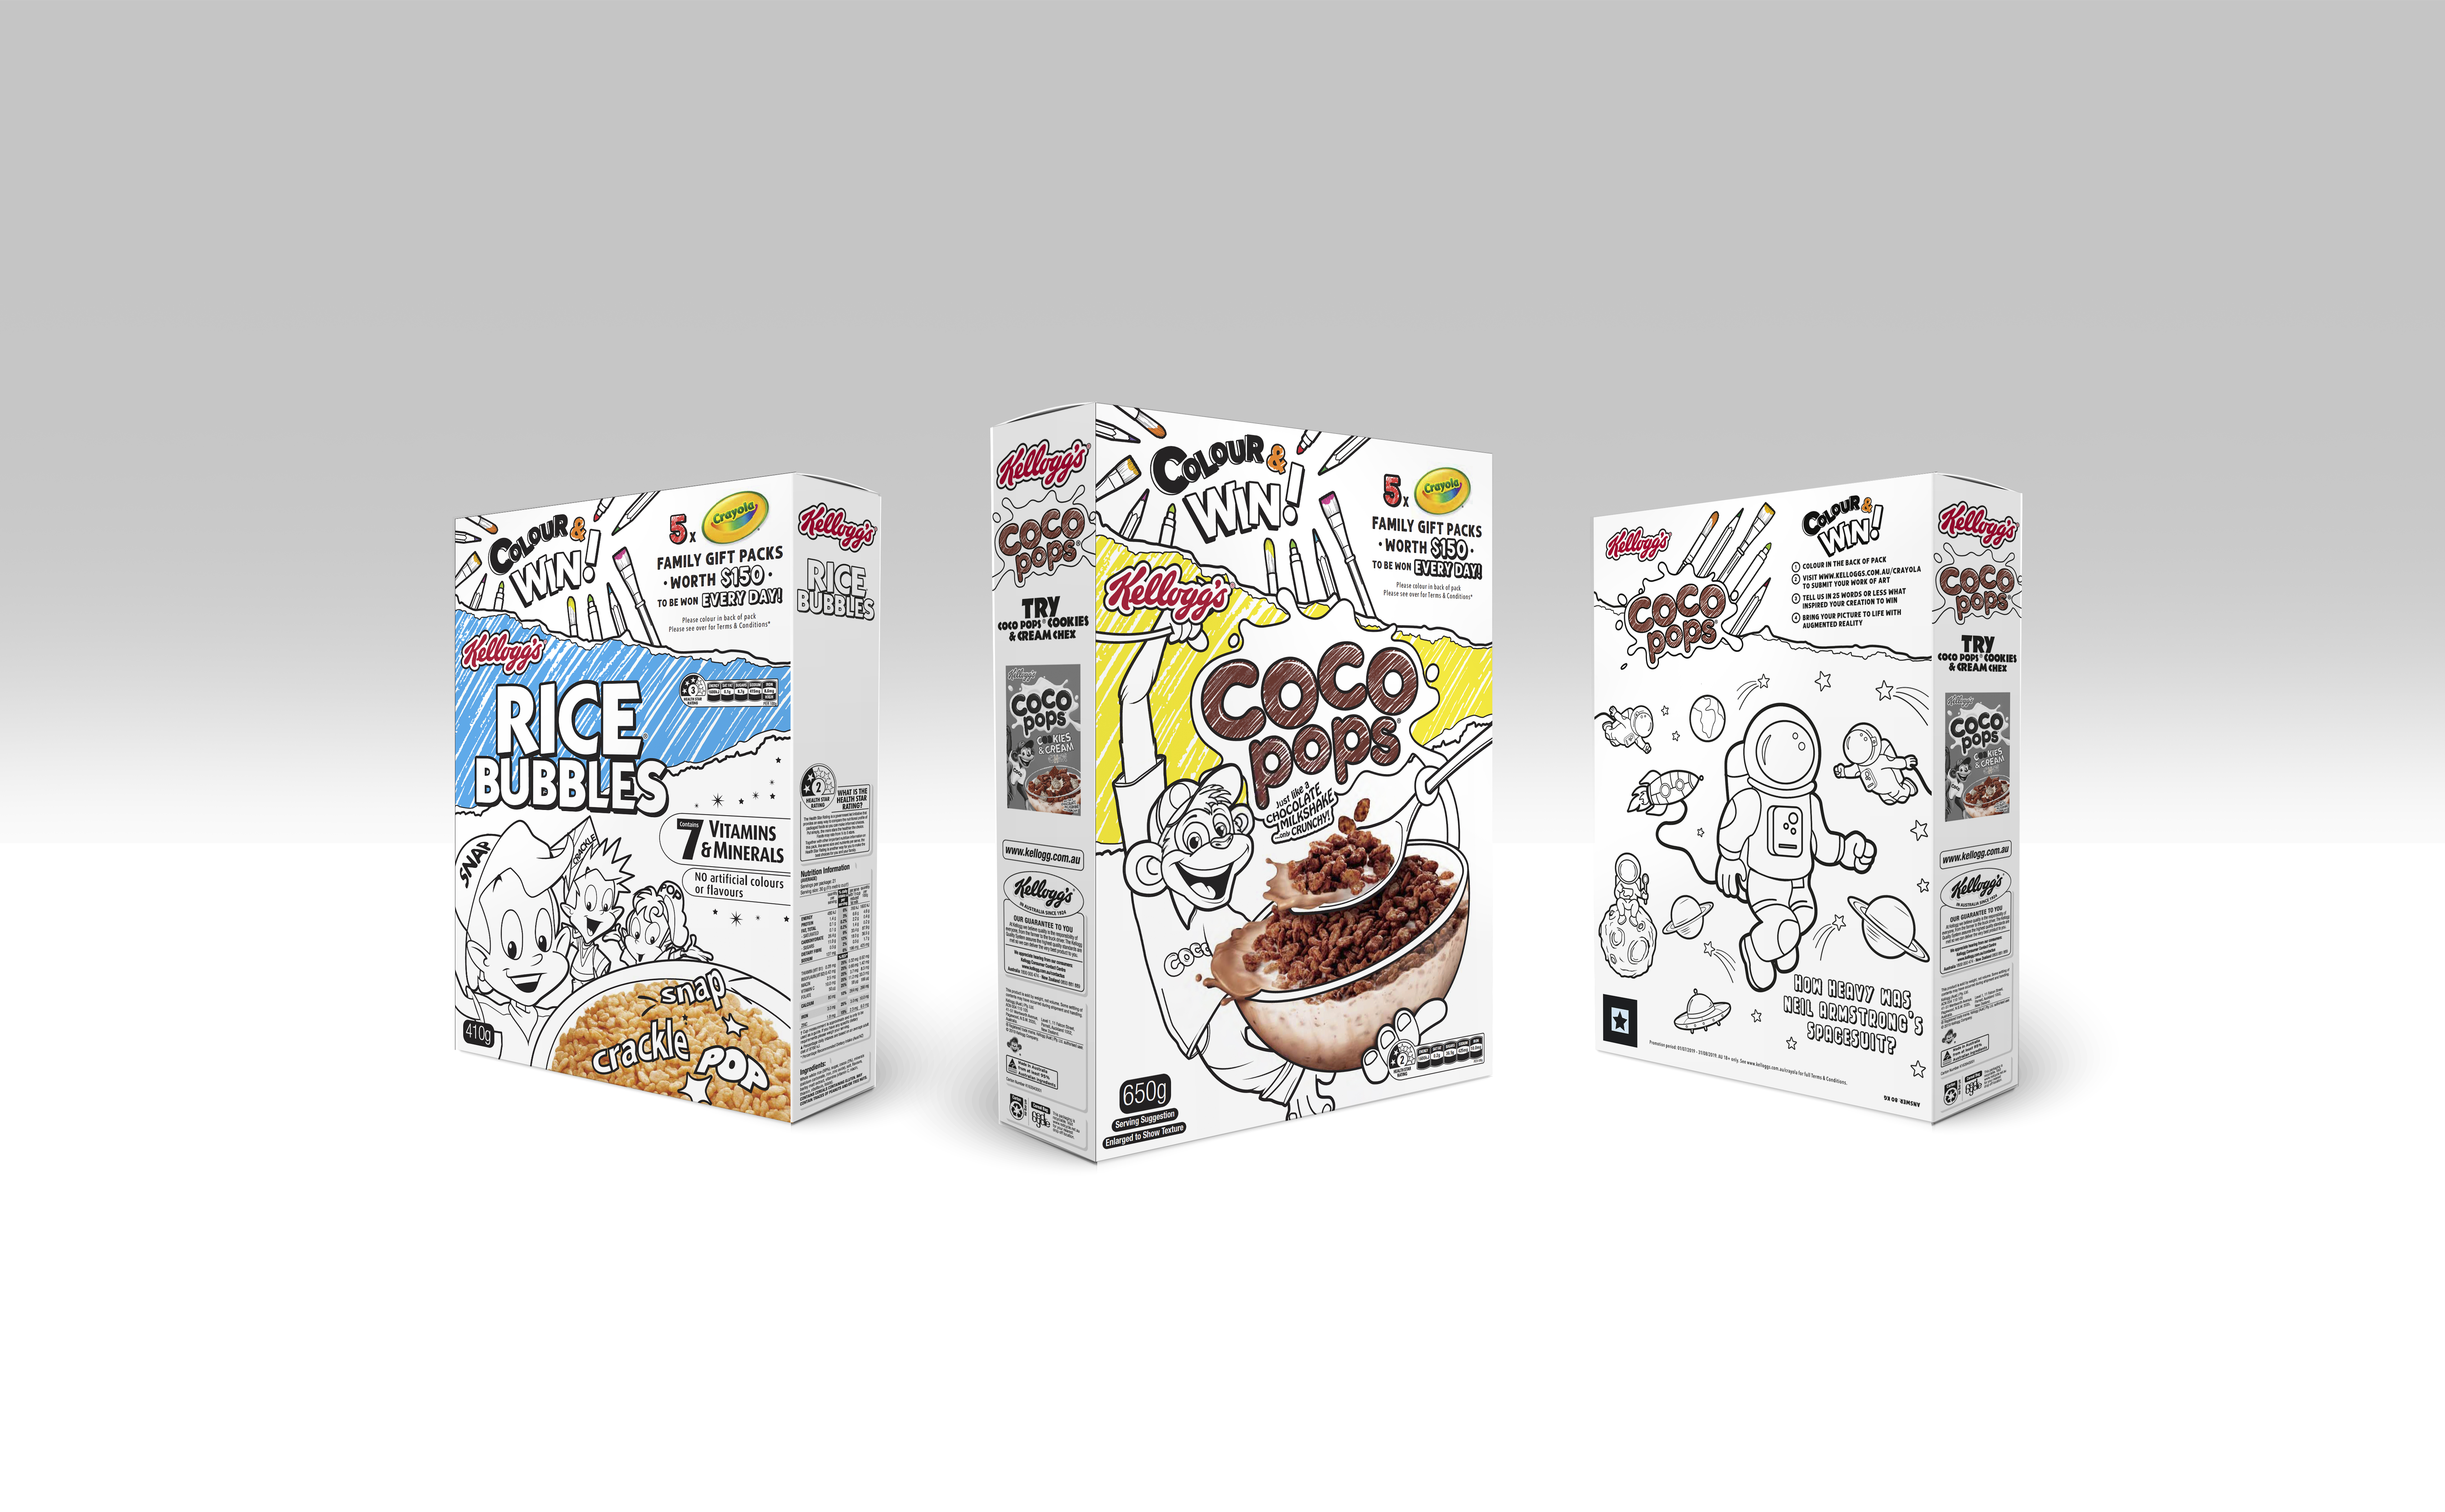 Kellogg's goes black and white in new 'Colour & Win' promotion with Crayola via Kinetic, Sydney